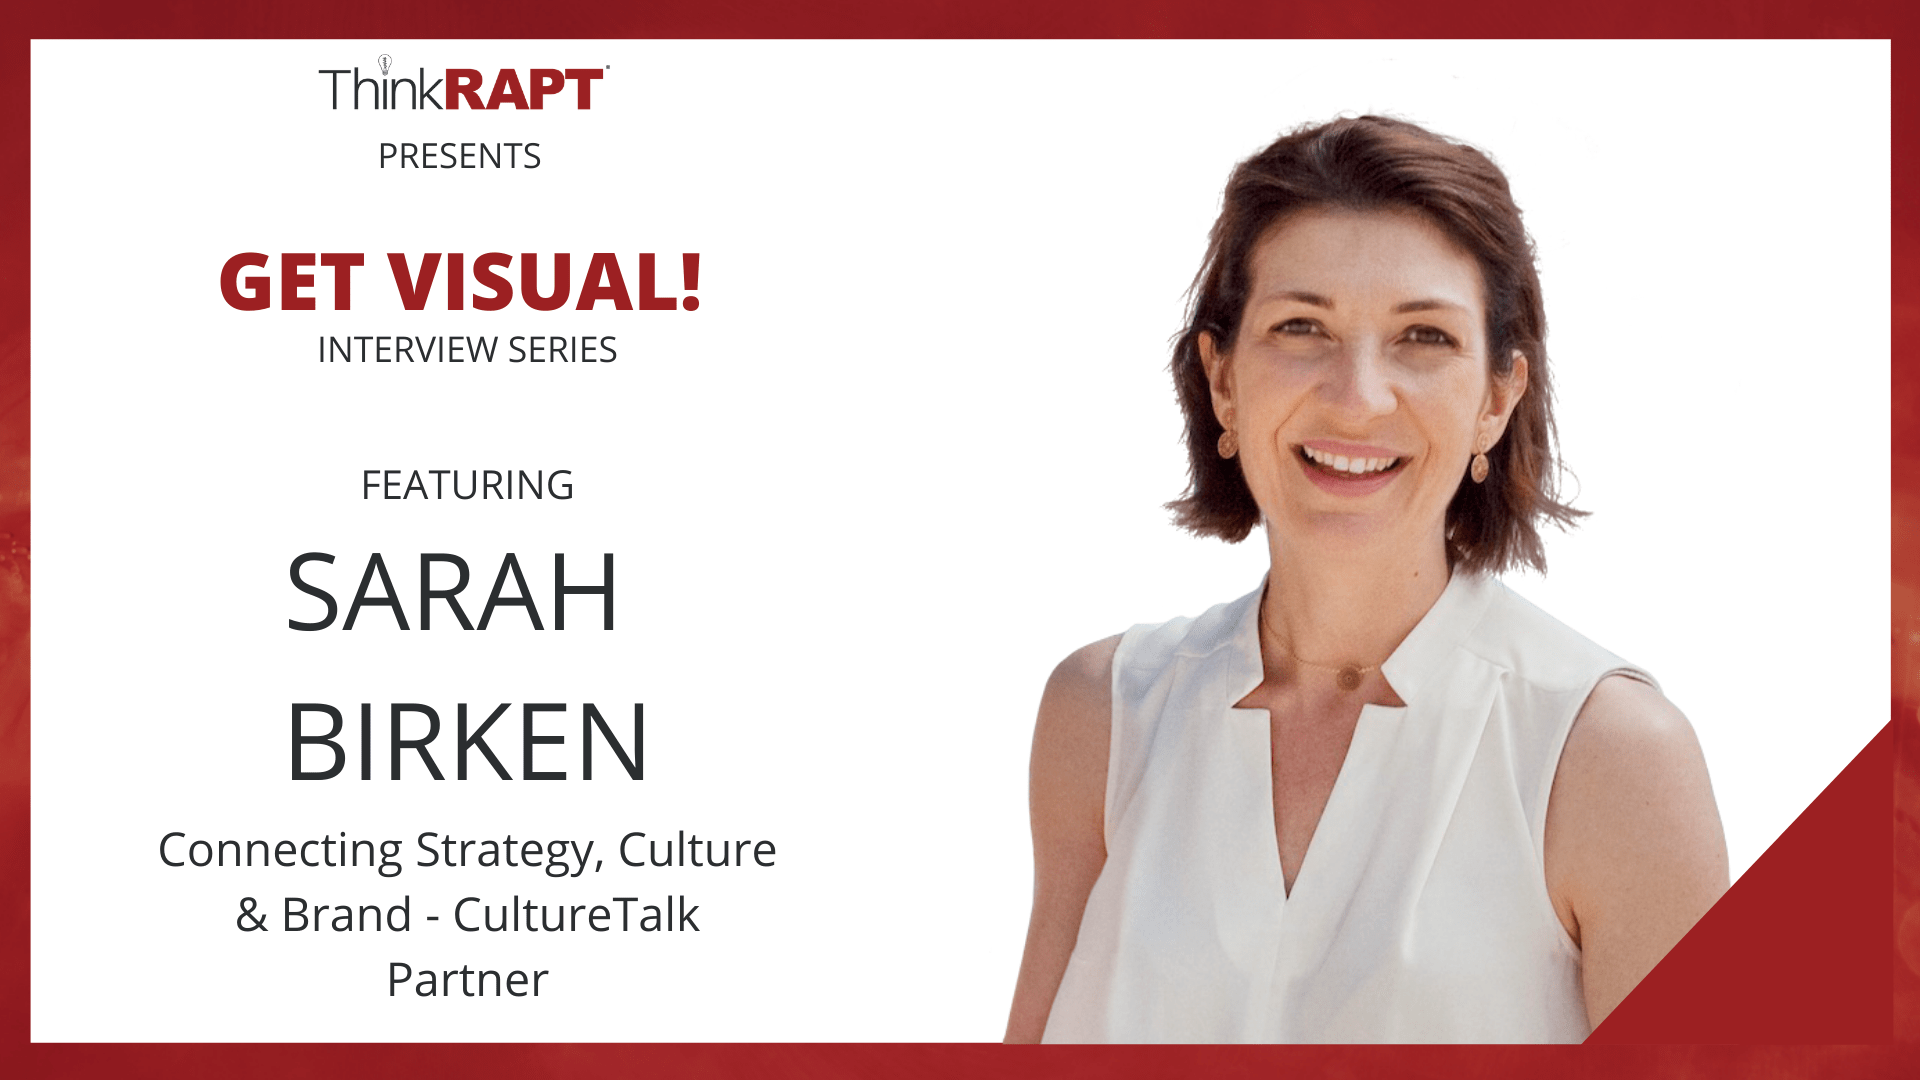 A woman wearing a white shirt, smiling at the camera. Text says Think RAPT presents Get Visual Interview Series featuring Sarah Birken.